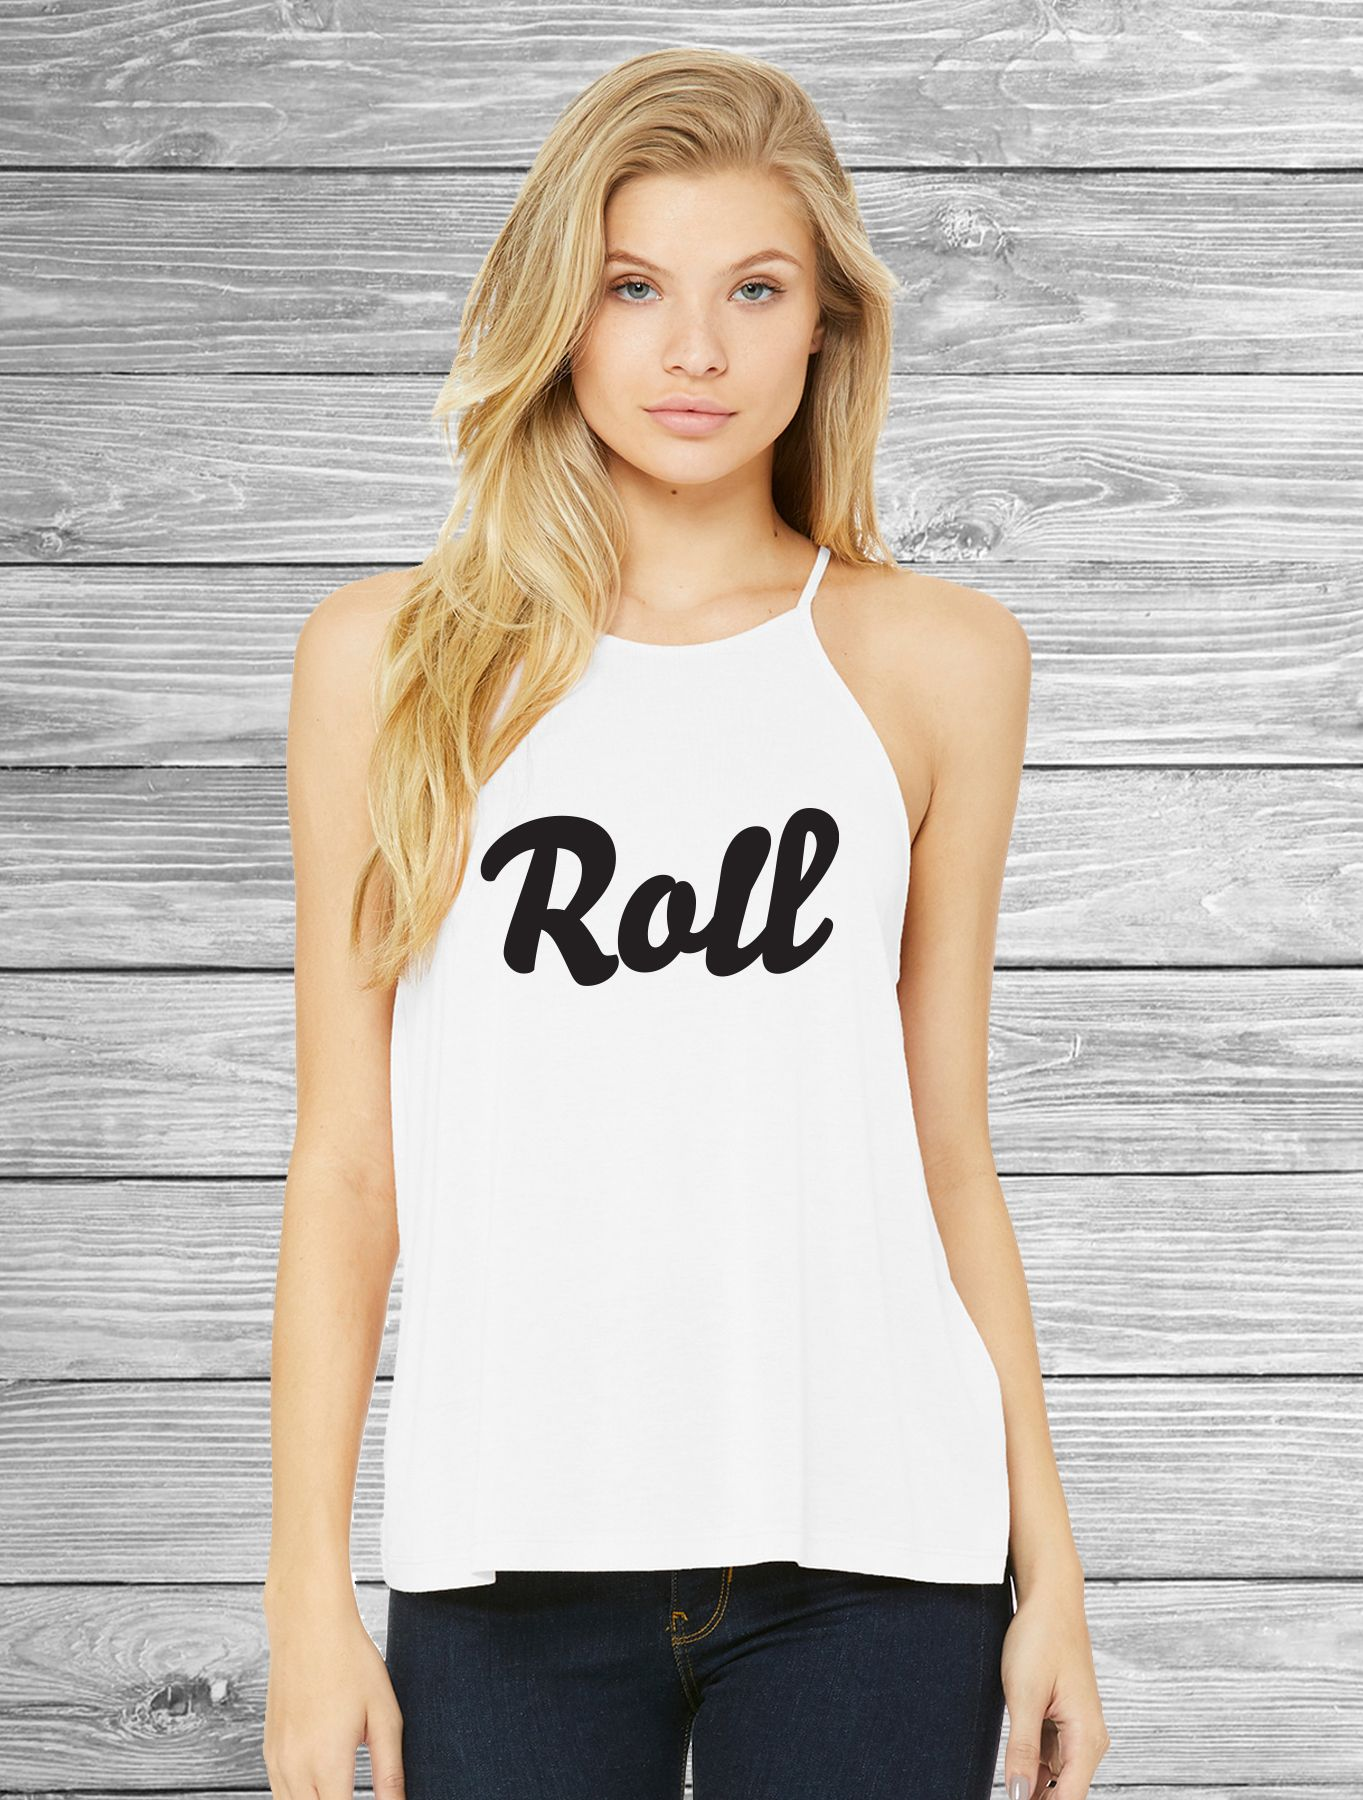 50b3a2e41a090 Roll Black White Women s Flowy High Neck Tank